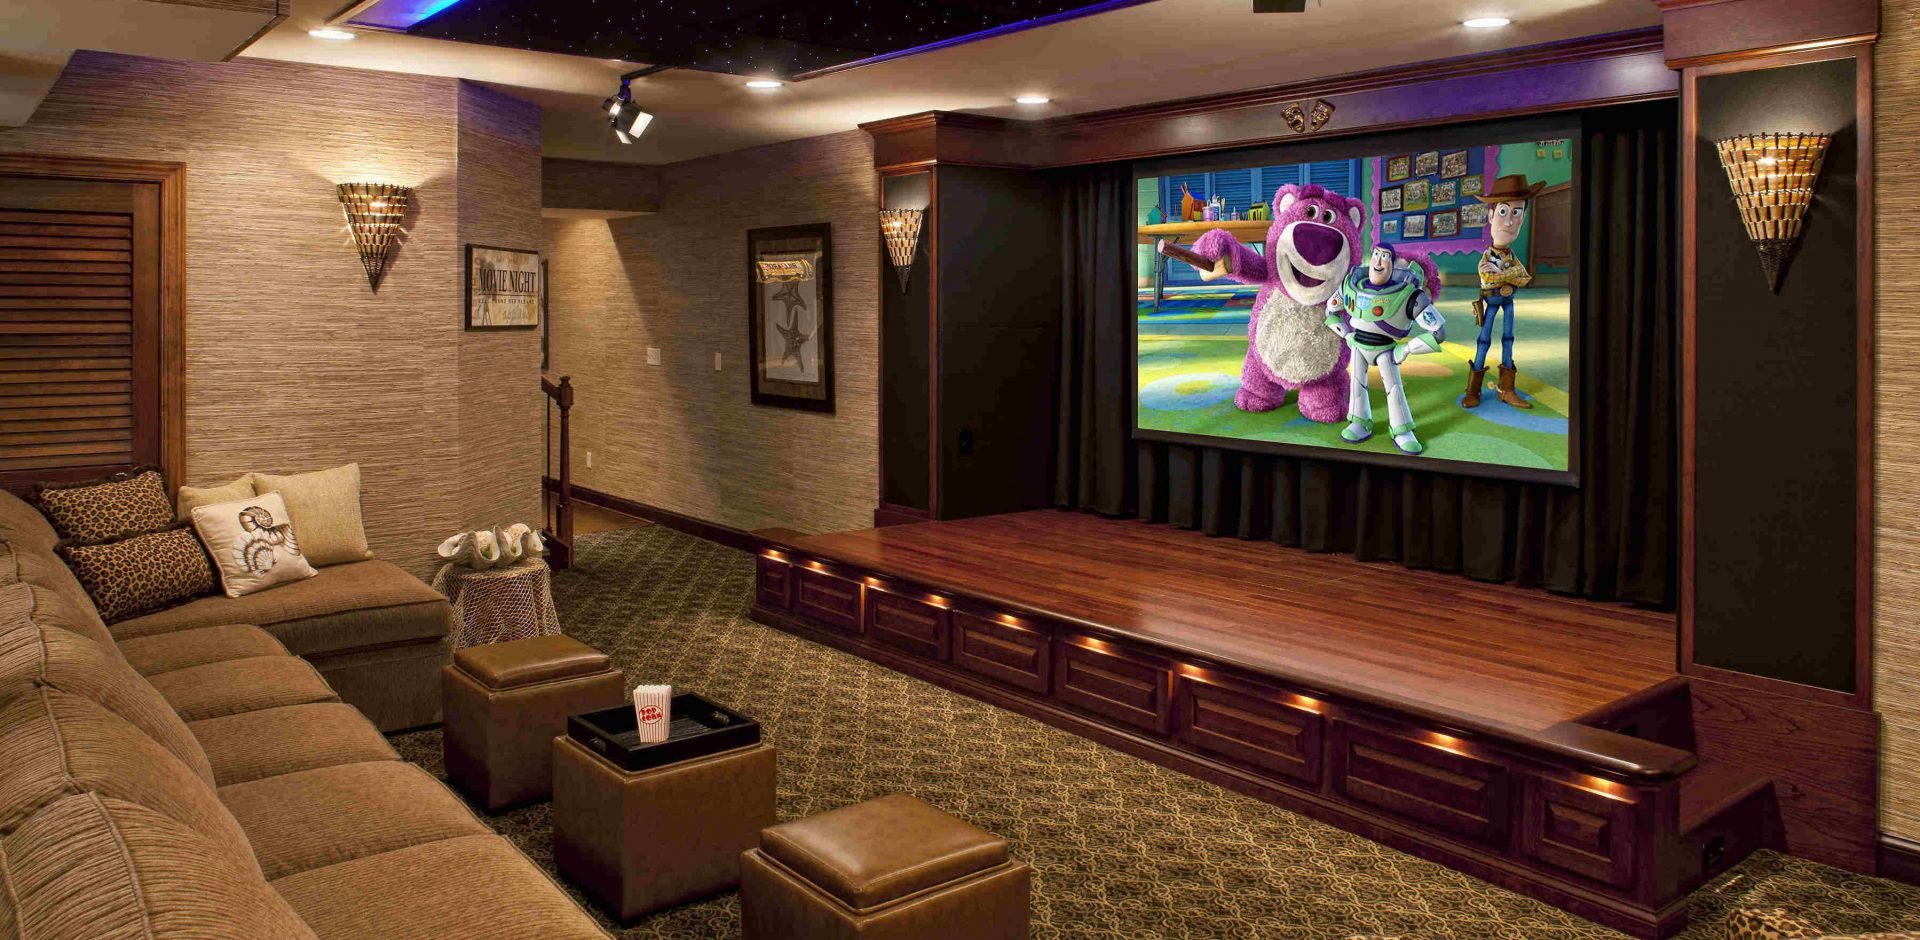 Home Front View Theater And Projector Screen Setup